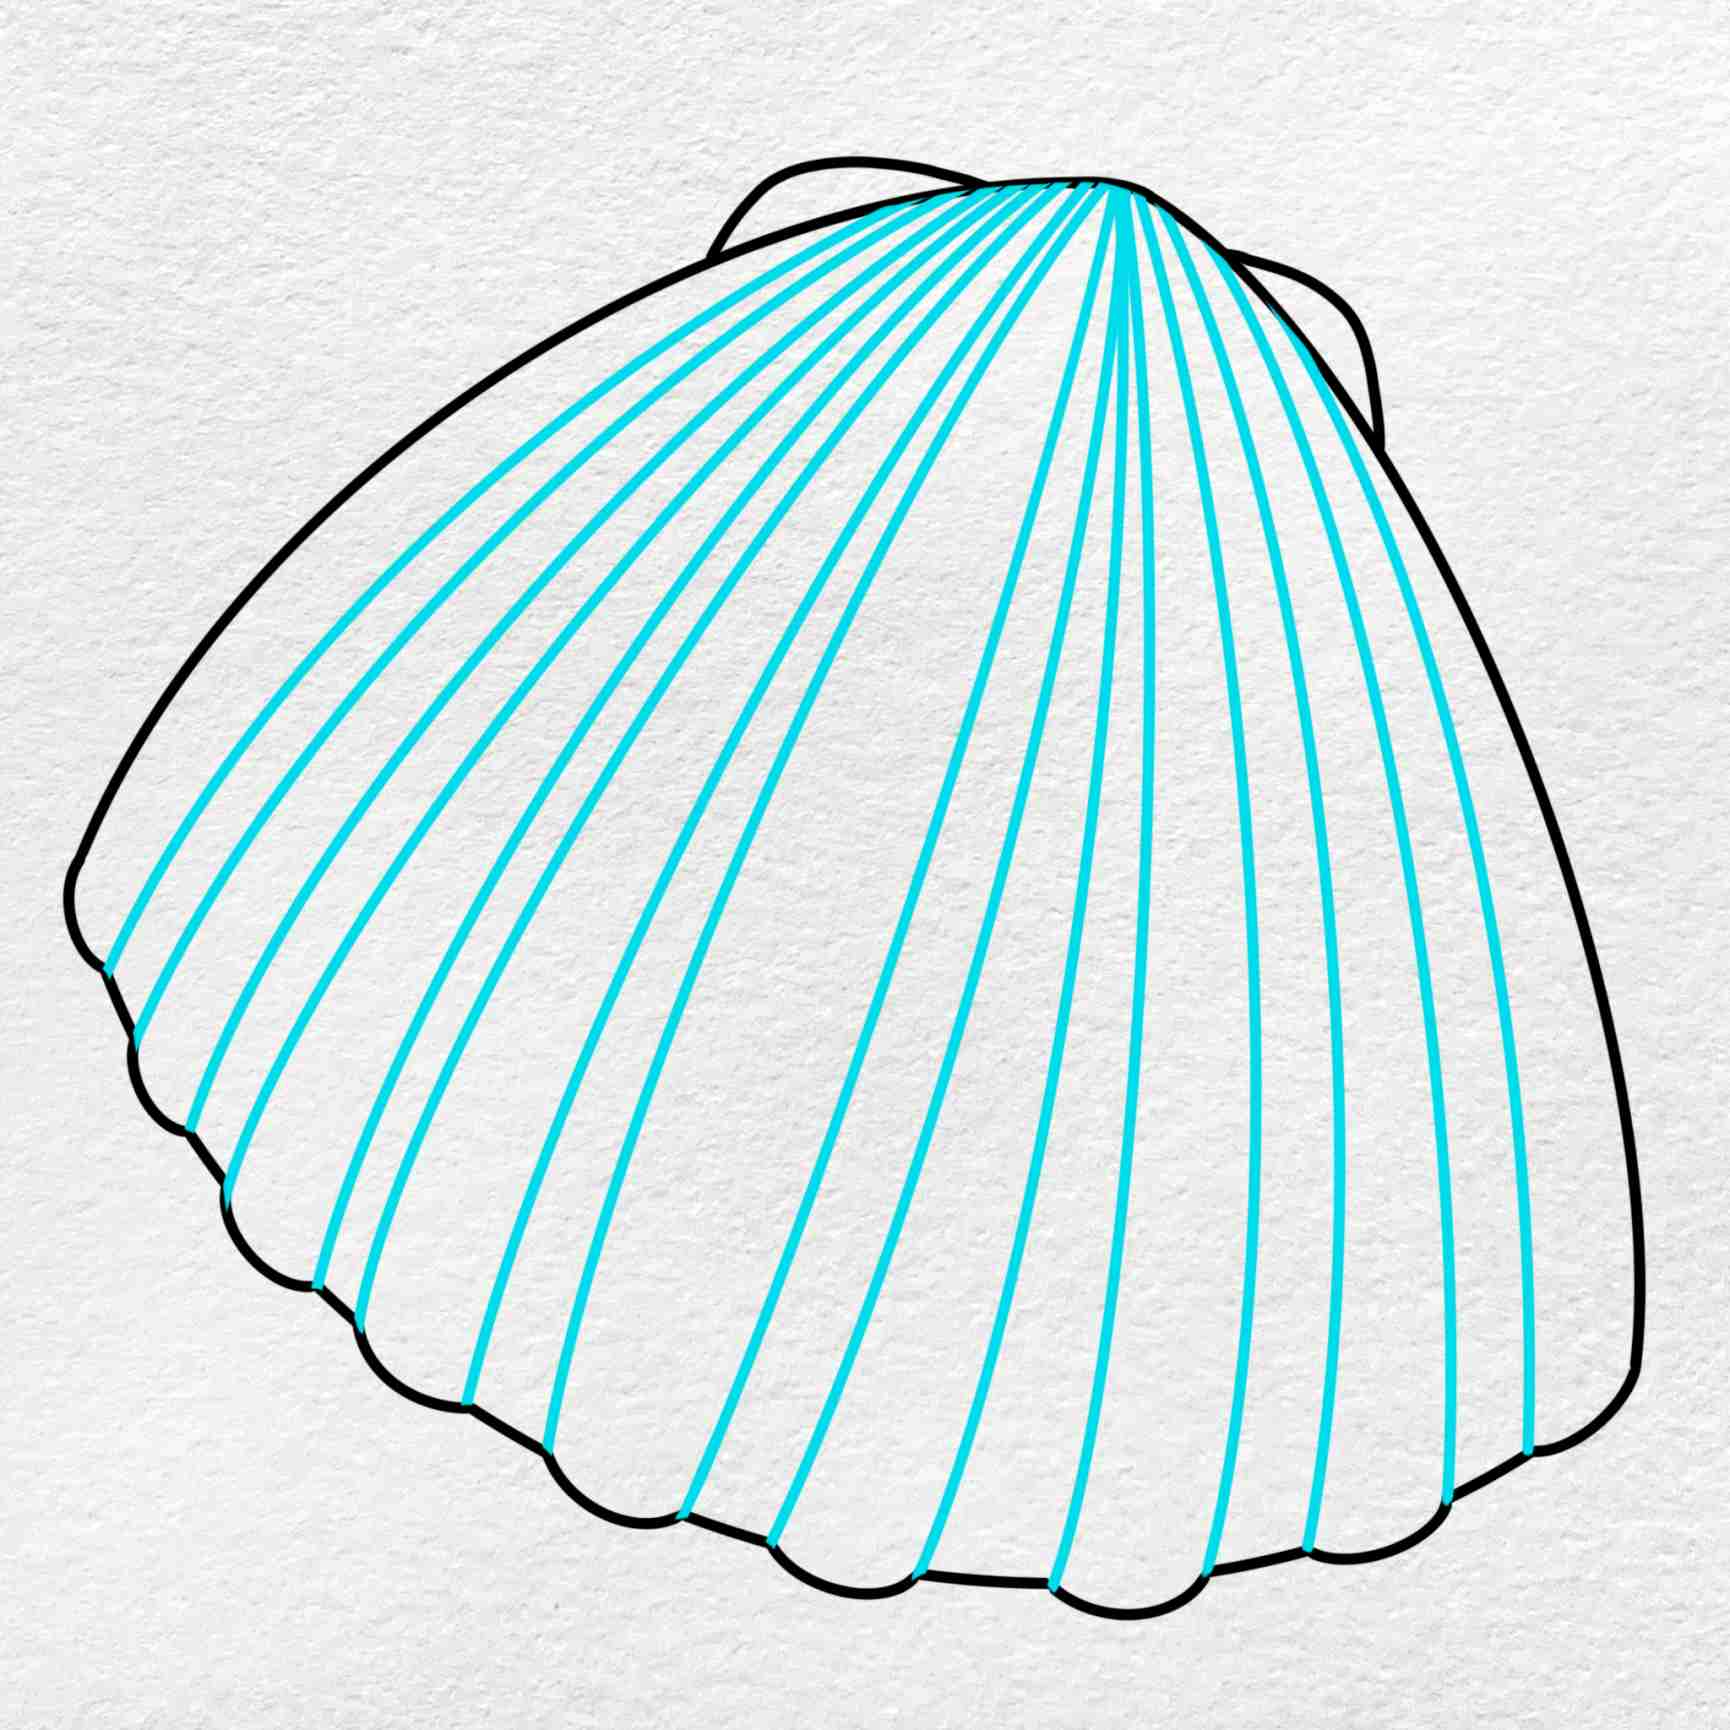 Clam Drawing: Step 5